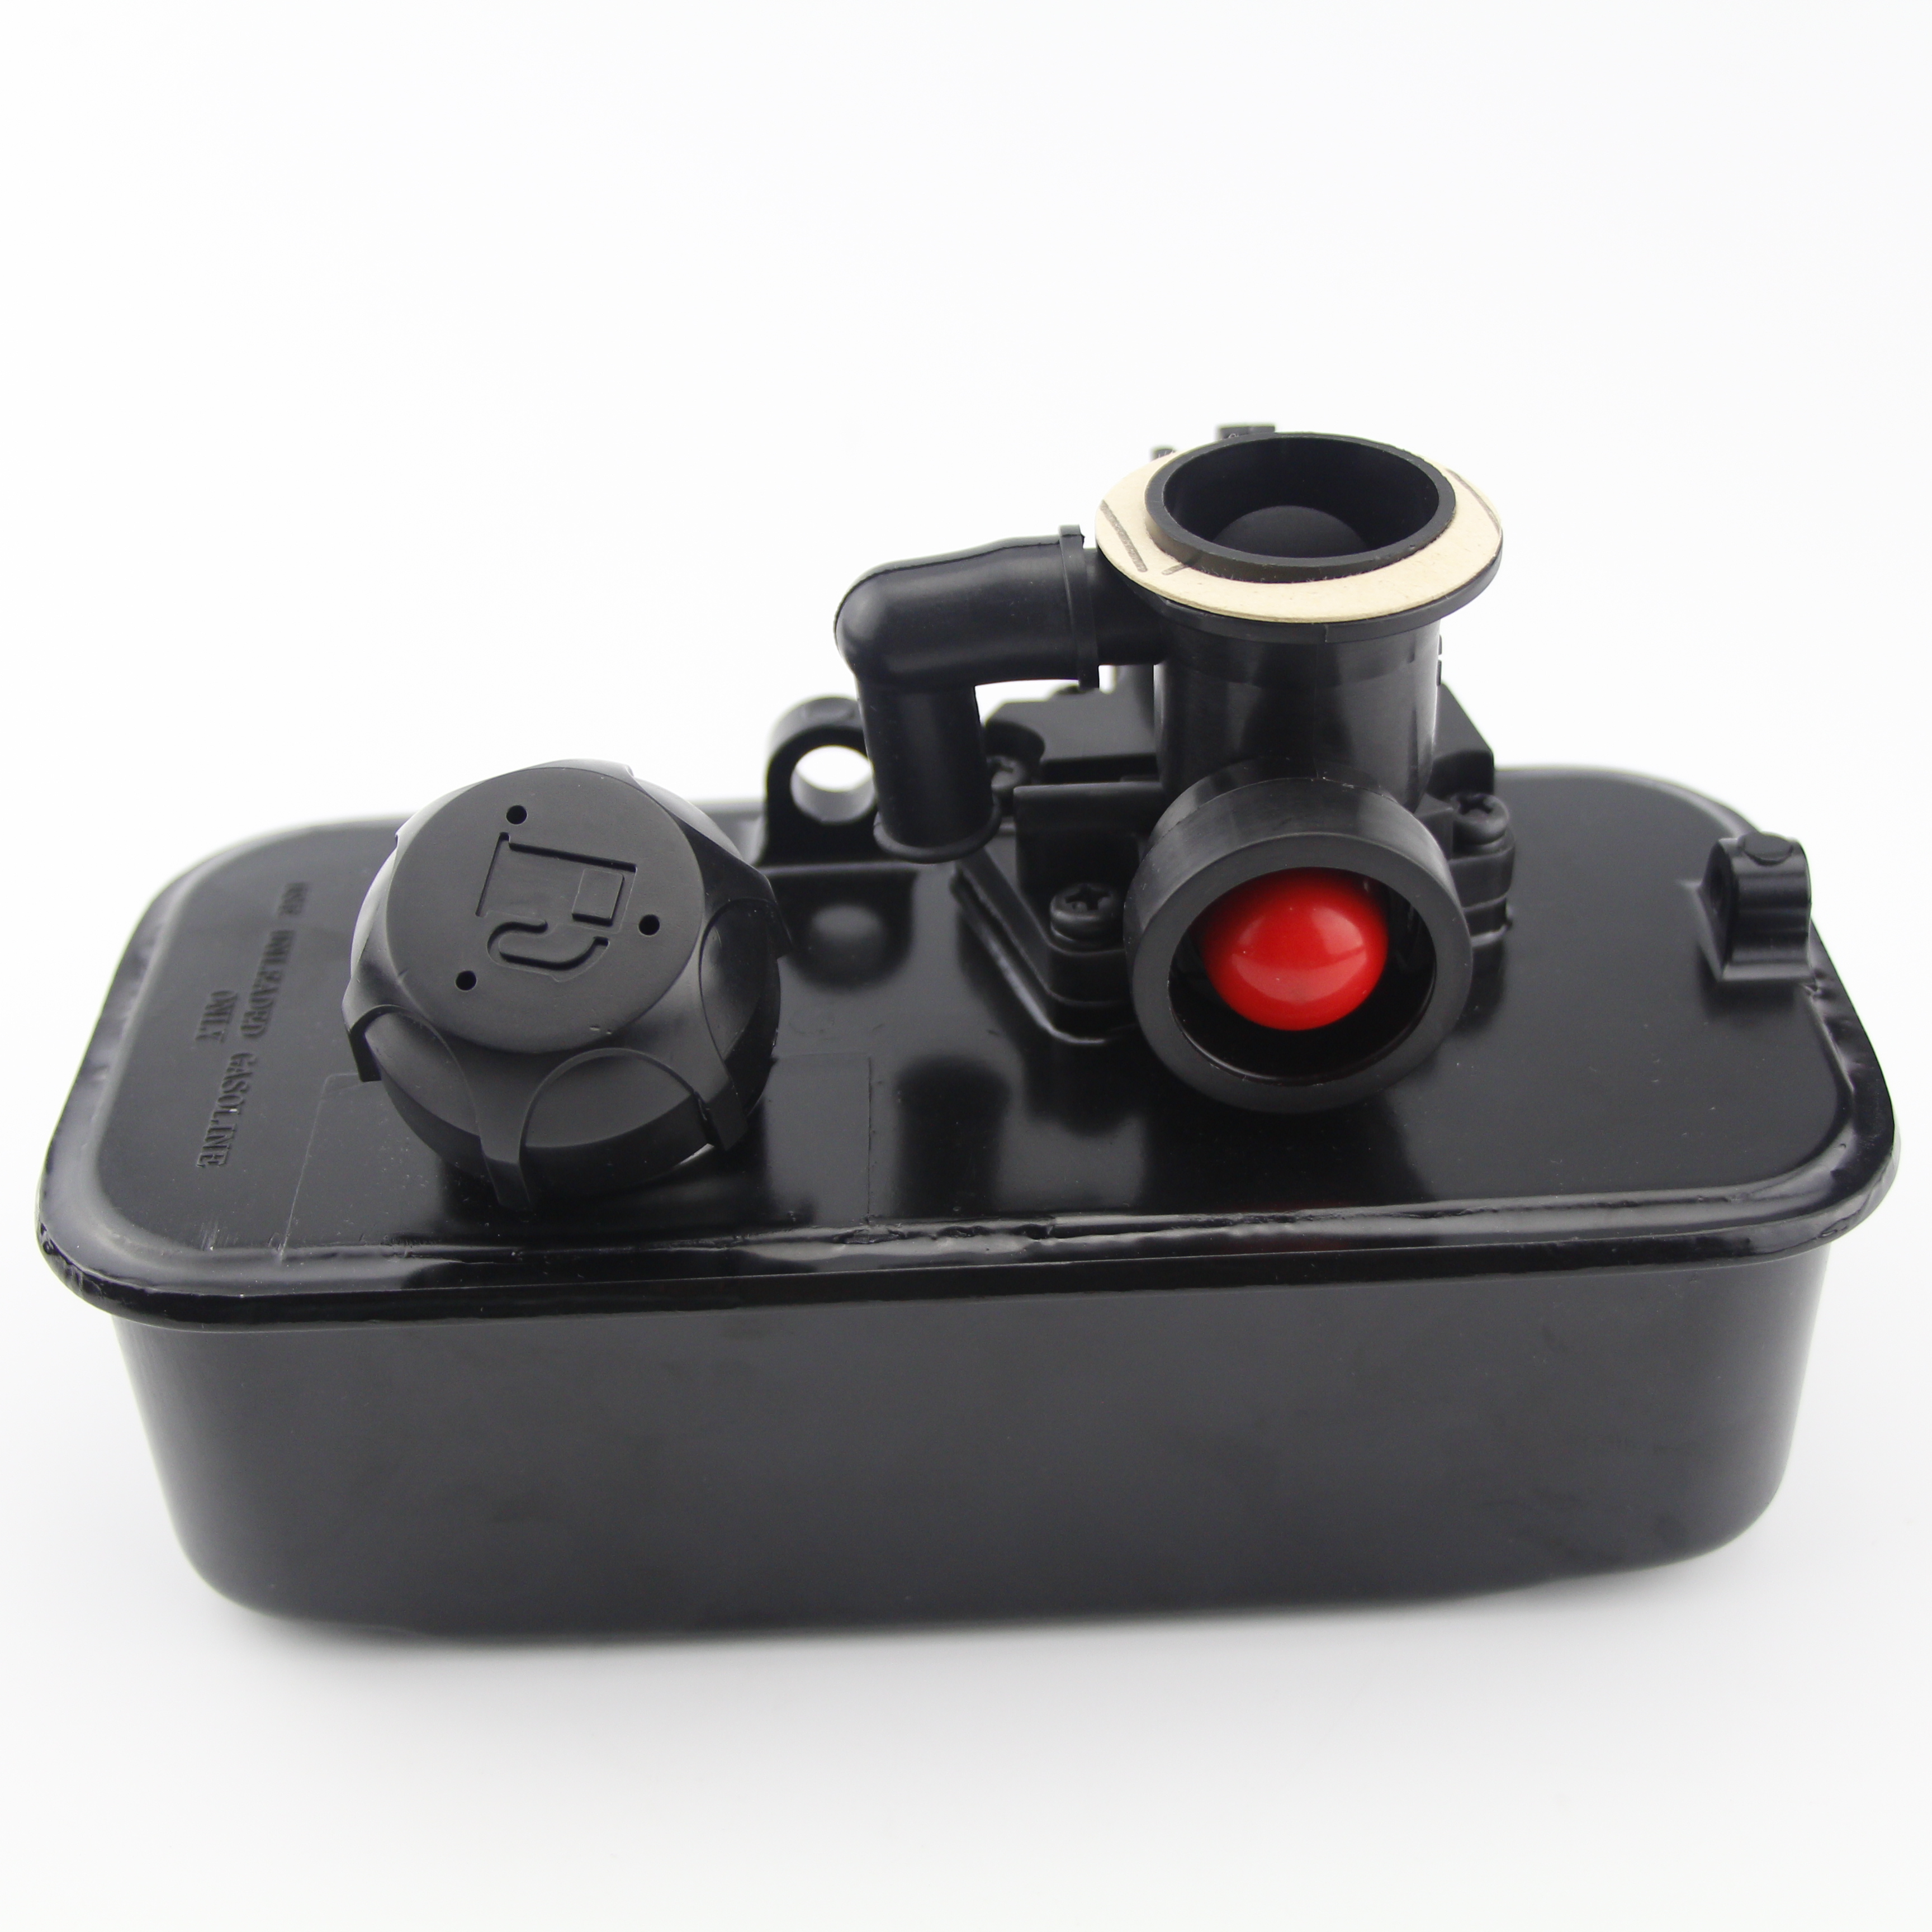 Gas fuel tank carburetor for briggs stratton 498809a 498809 494406 suit models 092502 092508 096582 092902 092982 093902 110908 110982 110987 110988